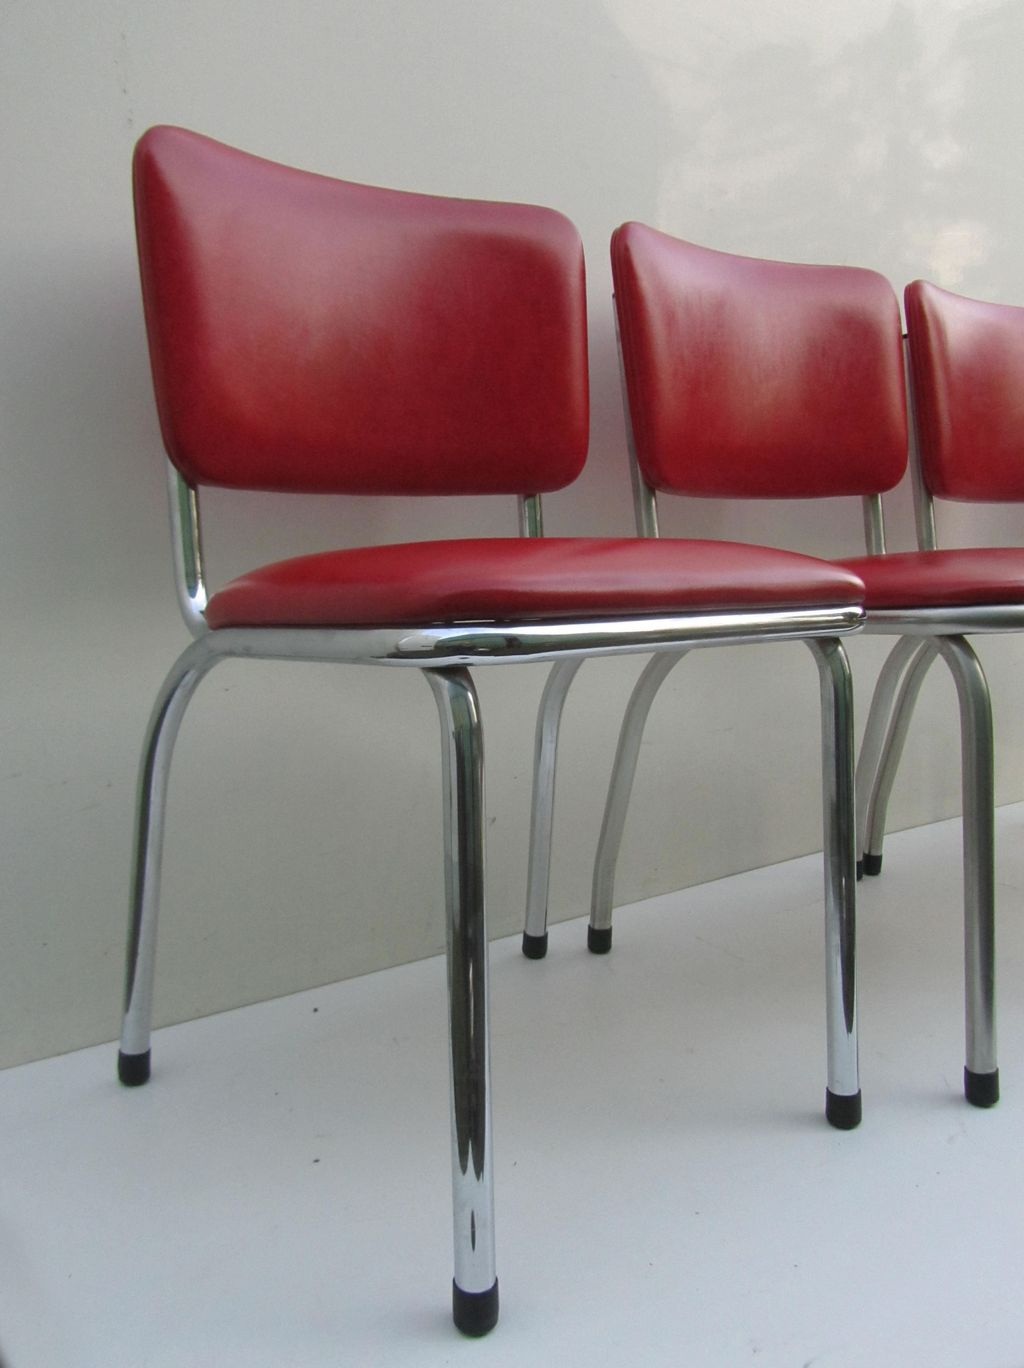 red retro kitchen chairs chair covers buy online vinyl 50s bel air art deco dining